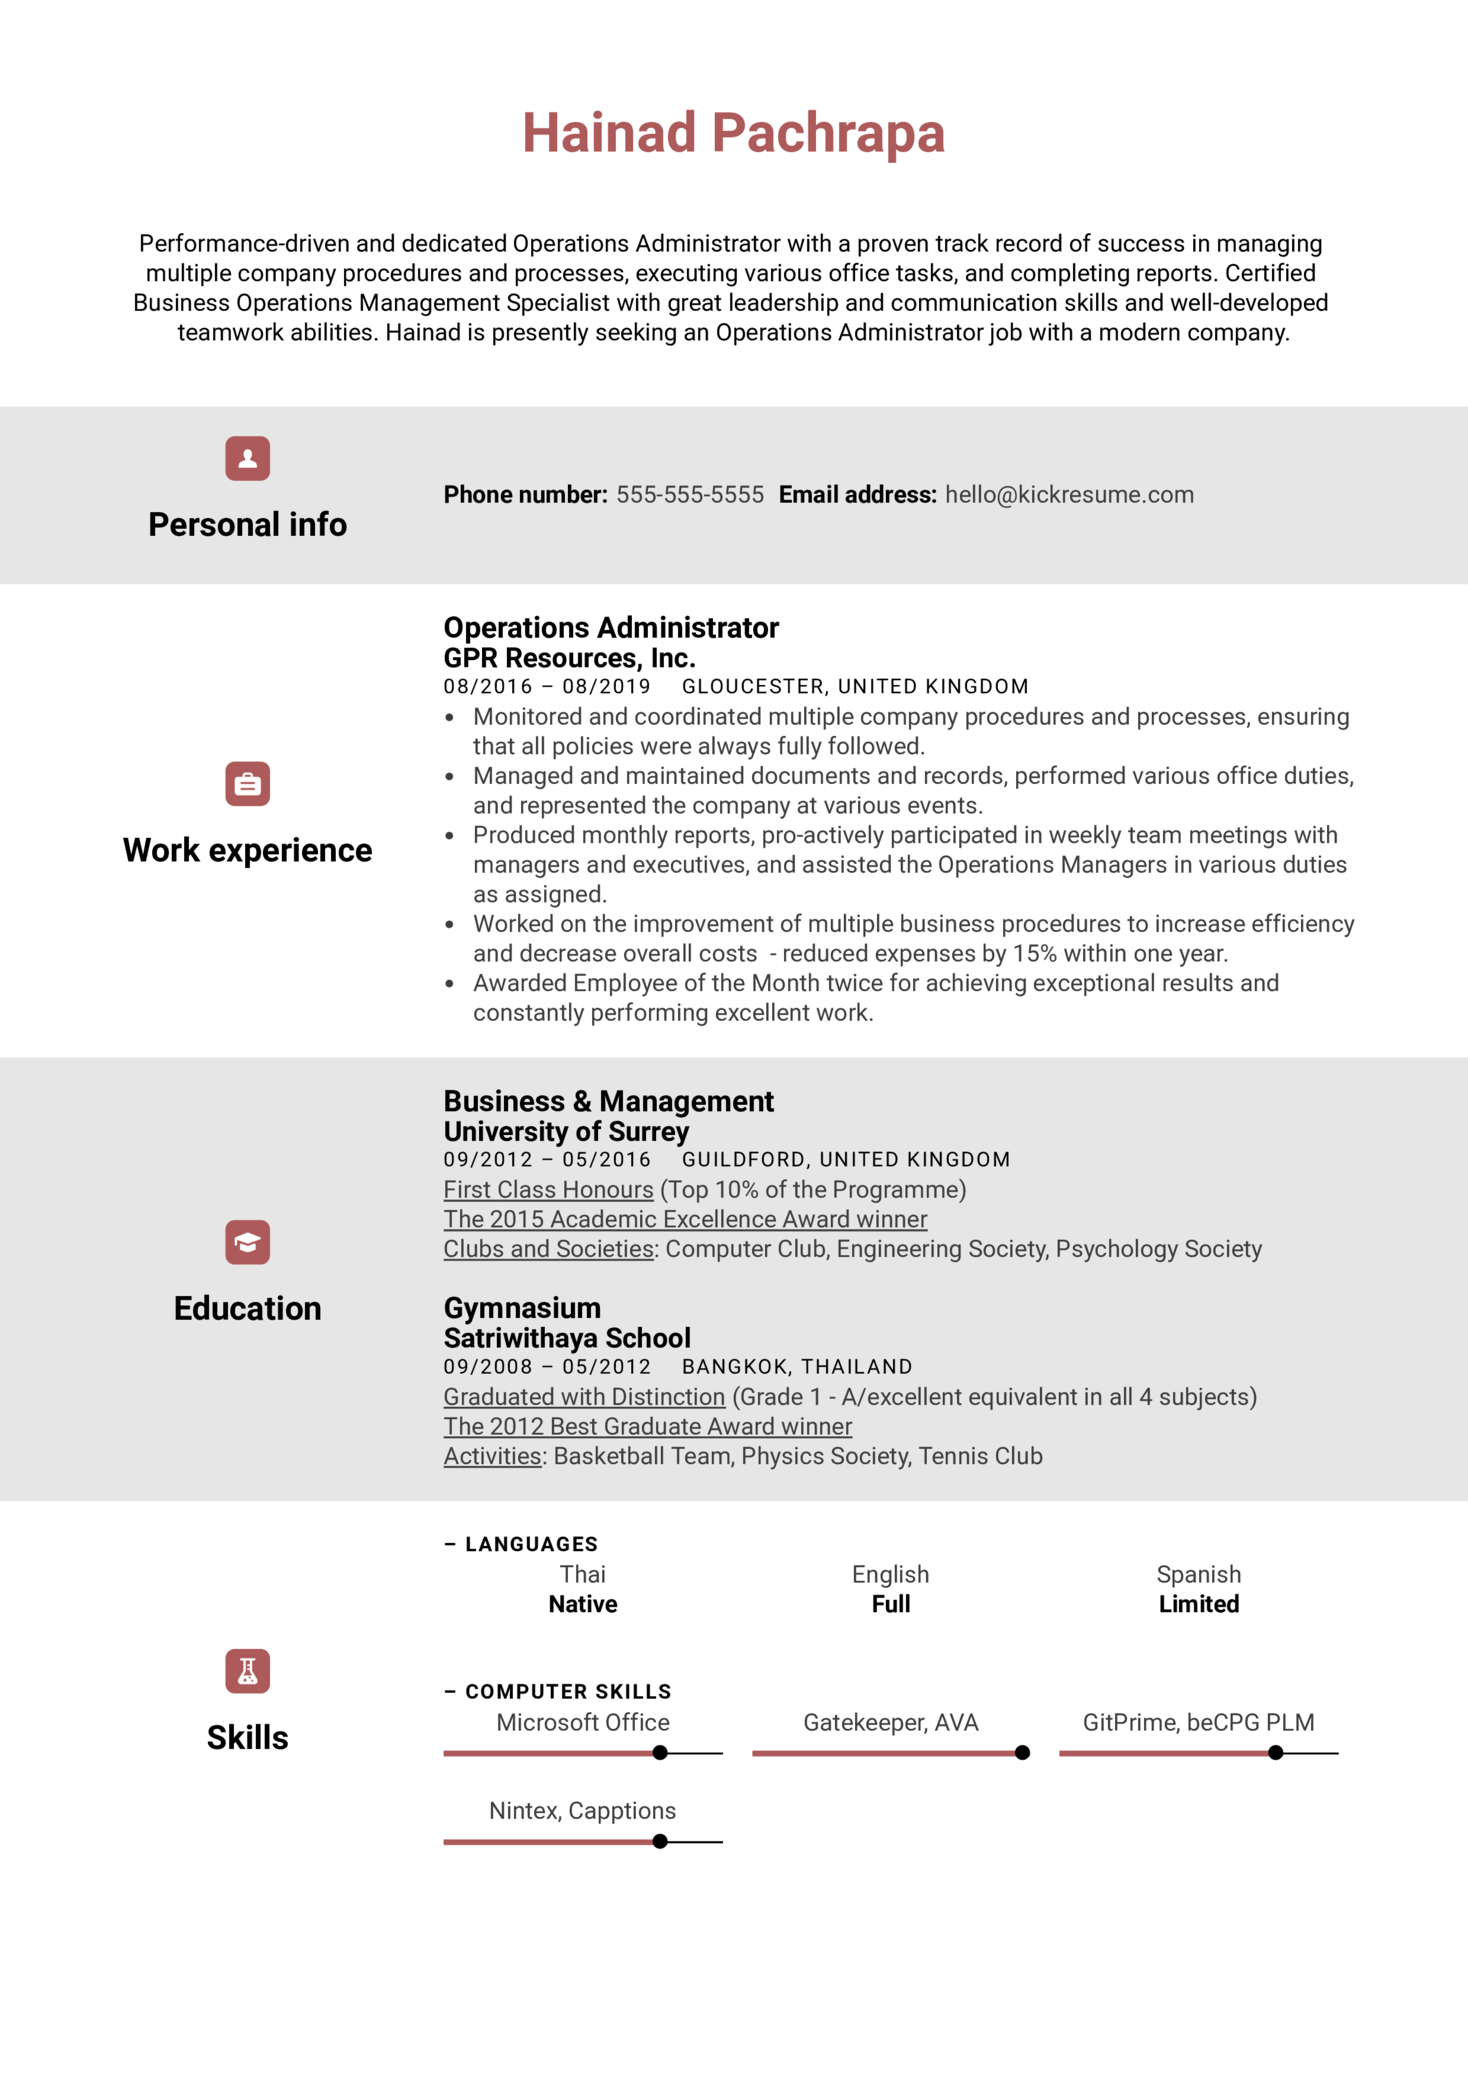 Operations Administrator Resume Example (Parte 1)